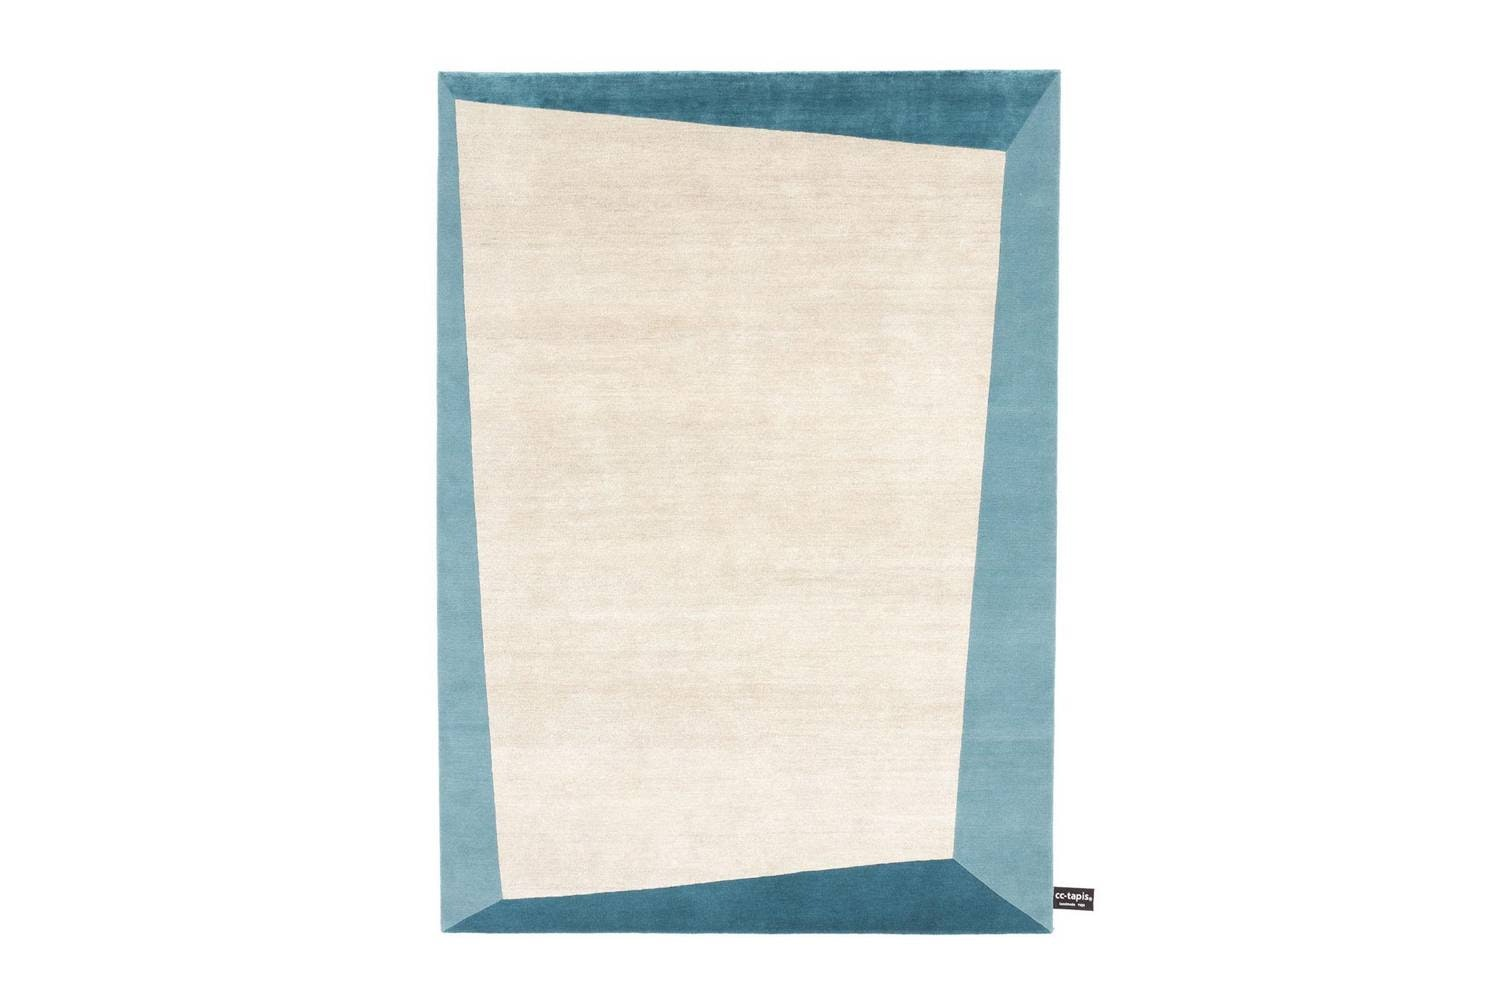 Dipped Frame Rug by Dipped Collection for CC-Tapis